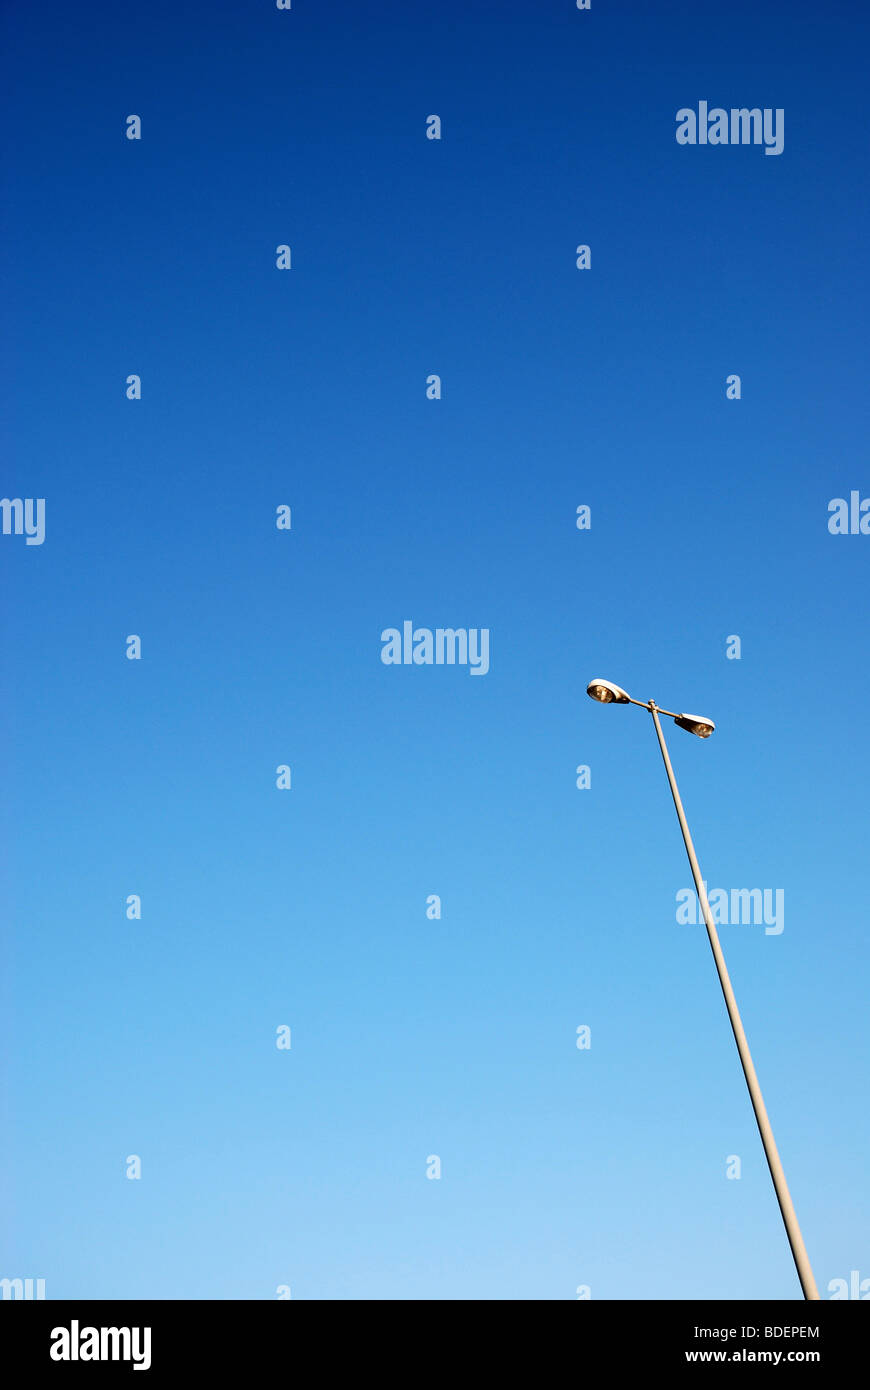 Rest are lamp posts against blue sky - Stock Image